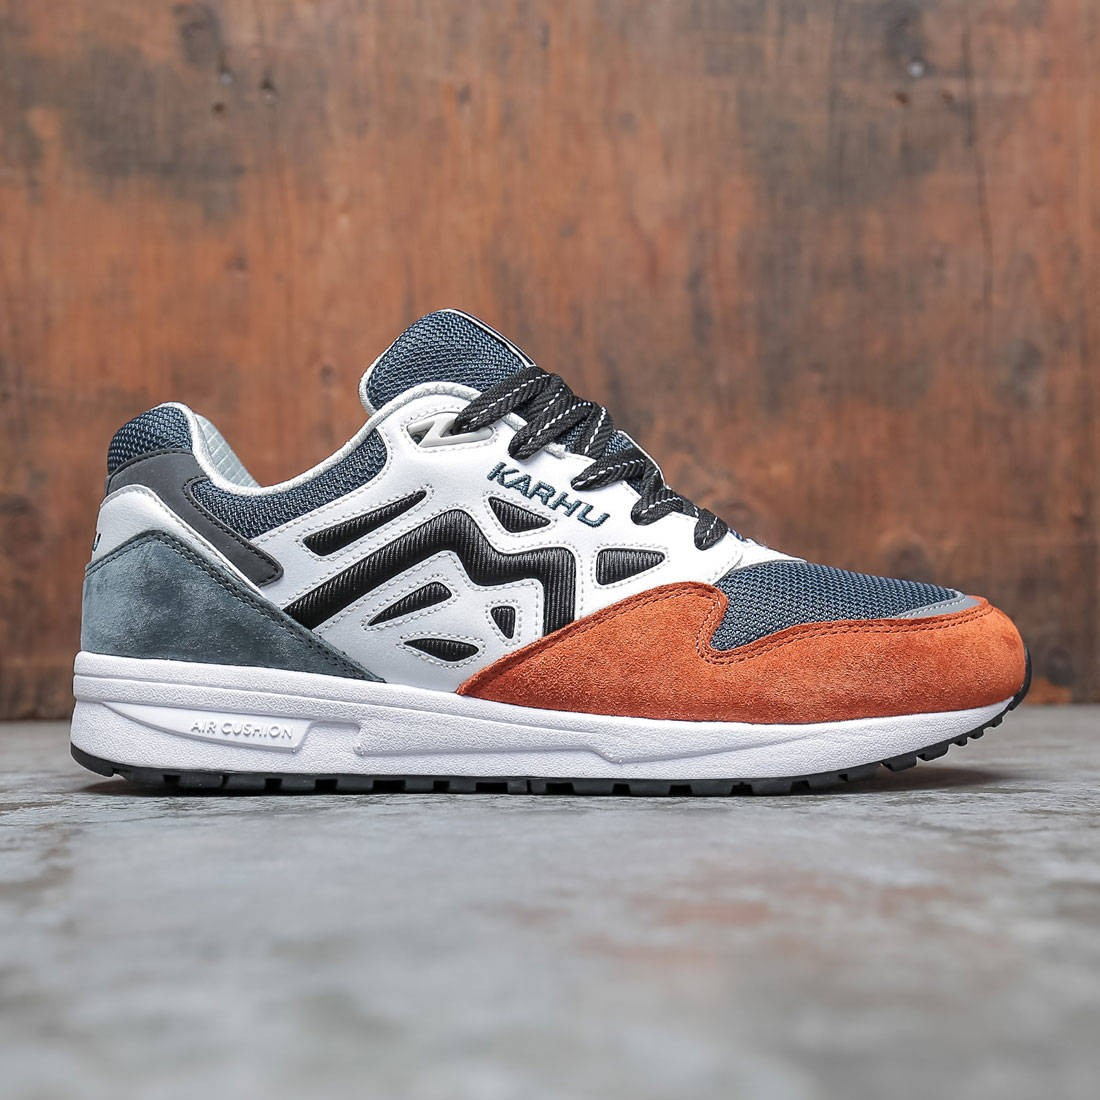 Karhu Men Legacy 96 (brown / cinnamon stick / white)